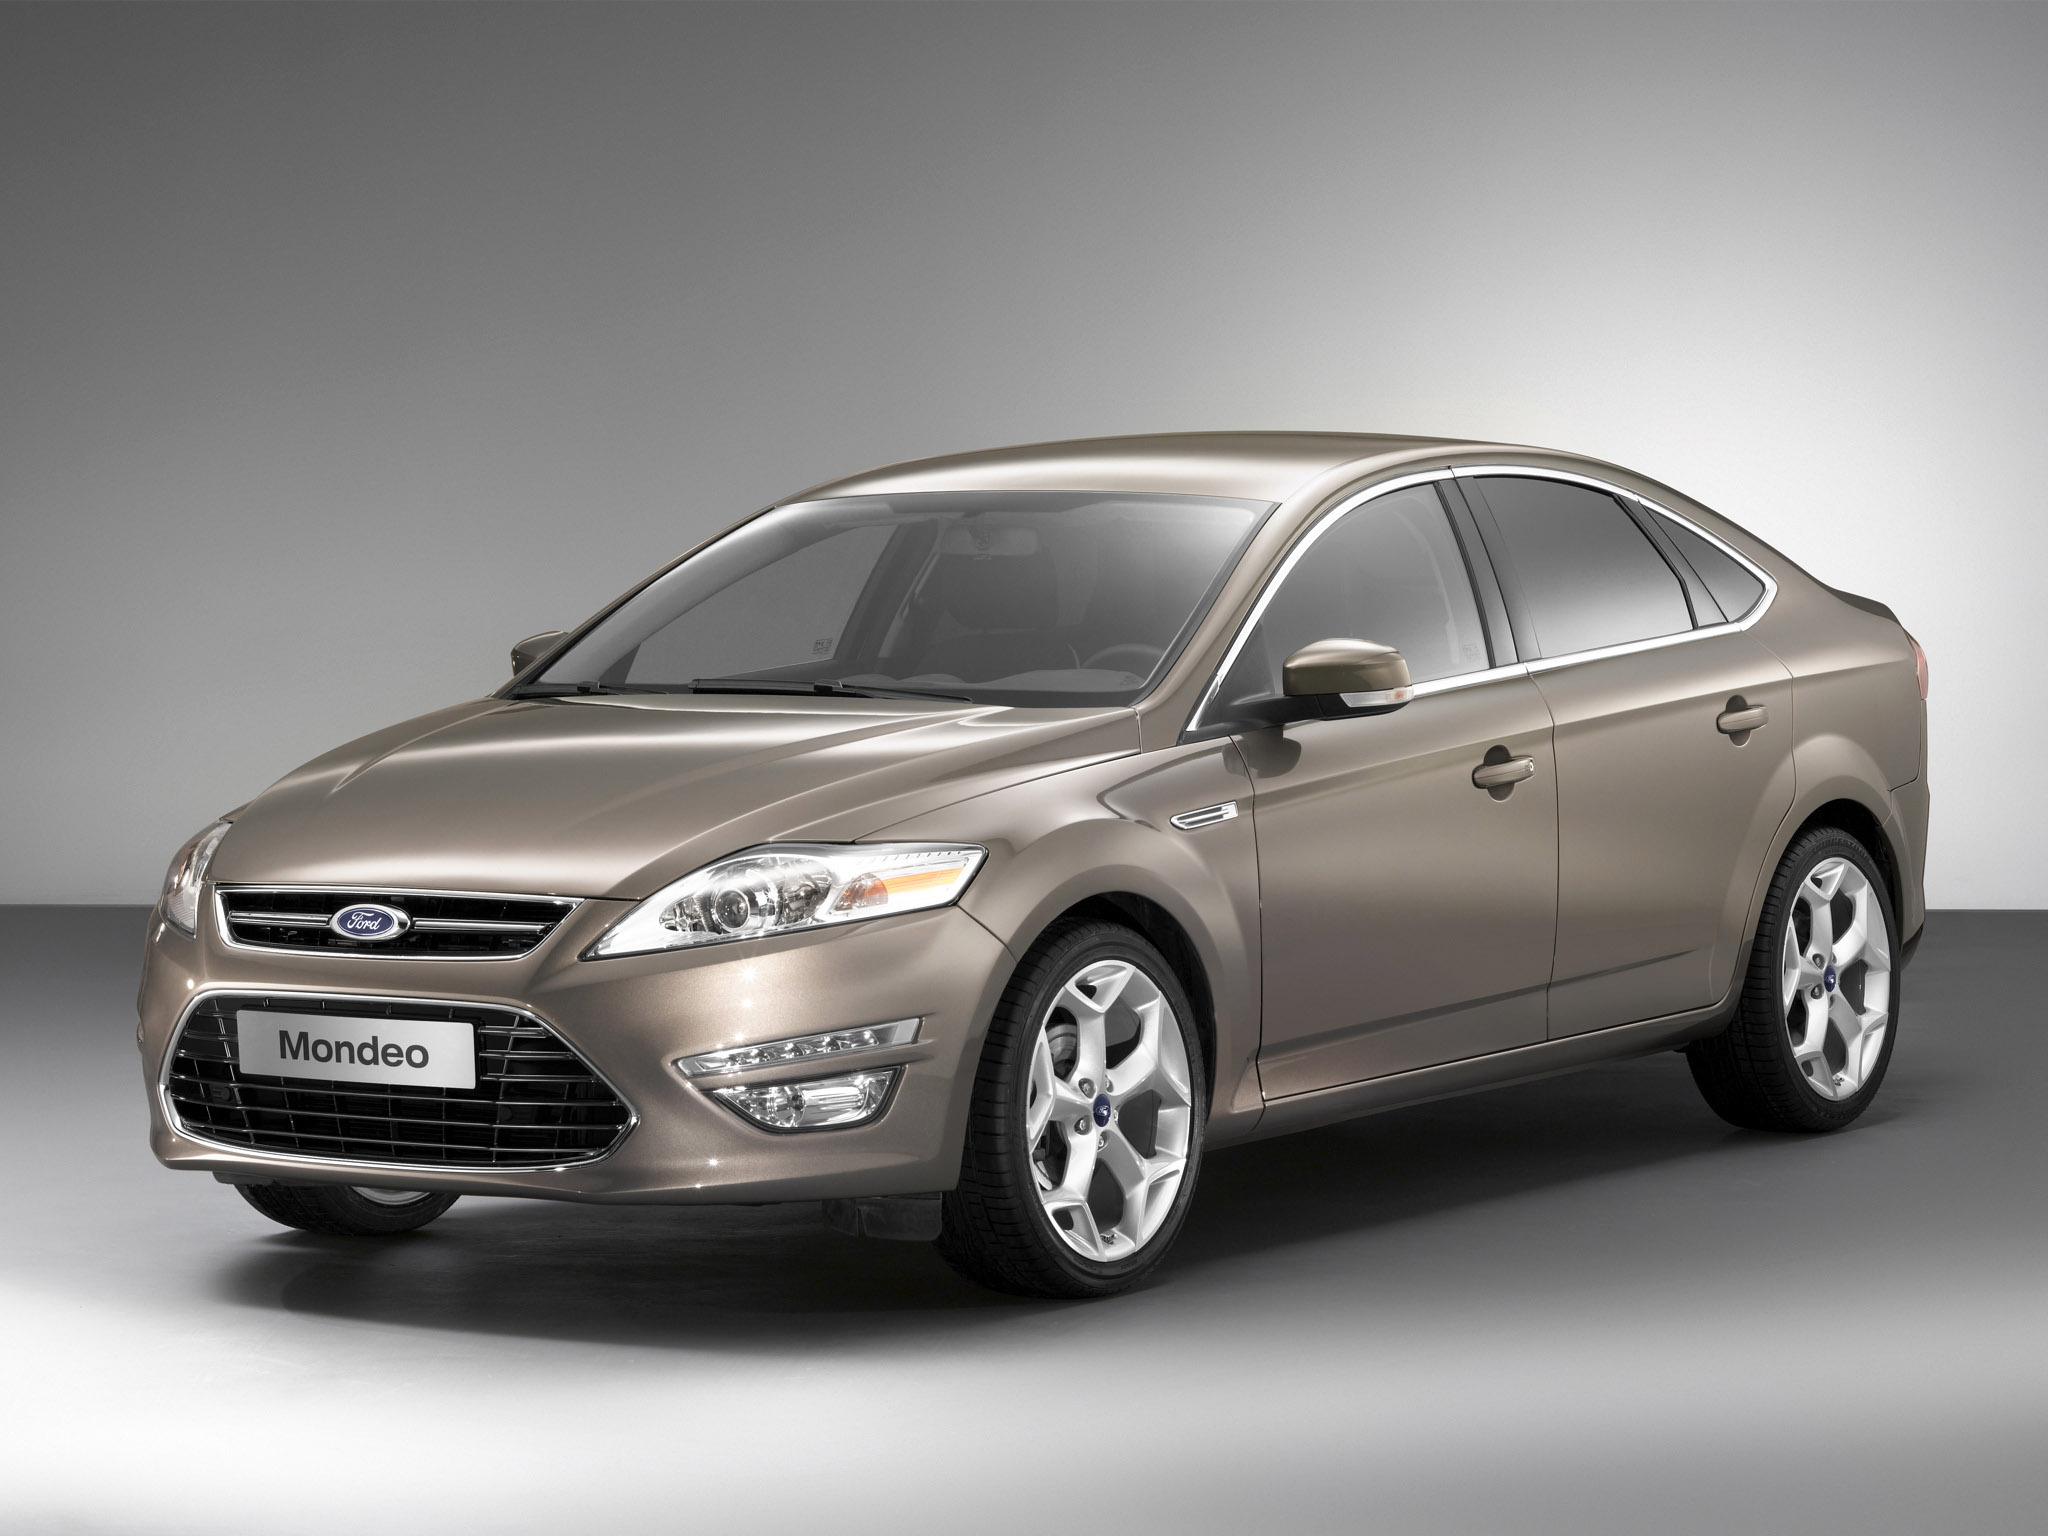 Ford Mondeo 2.0 2010 photo - 5